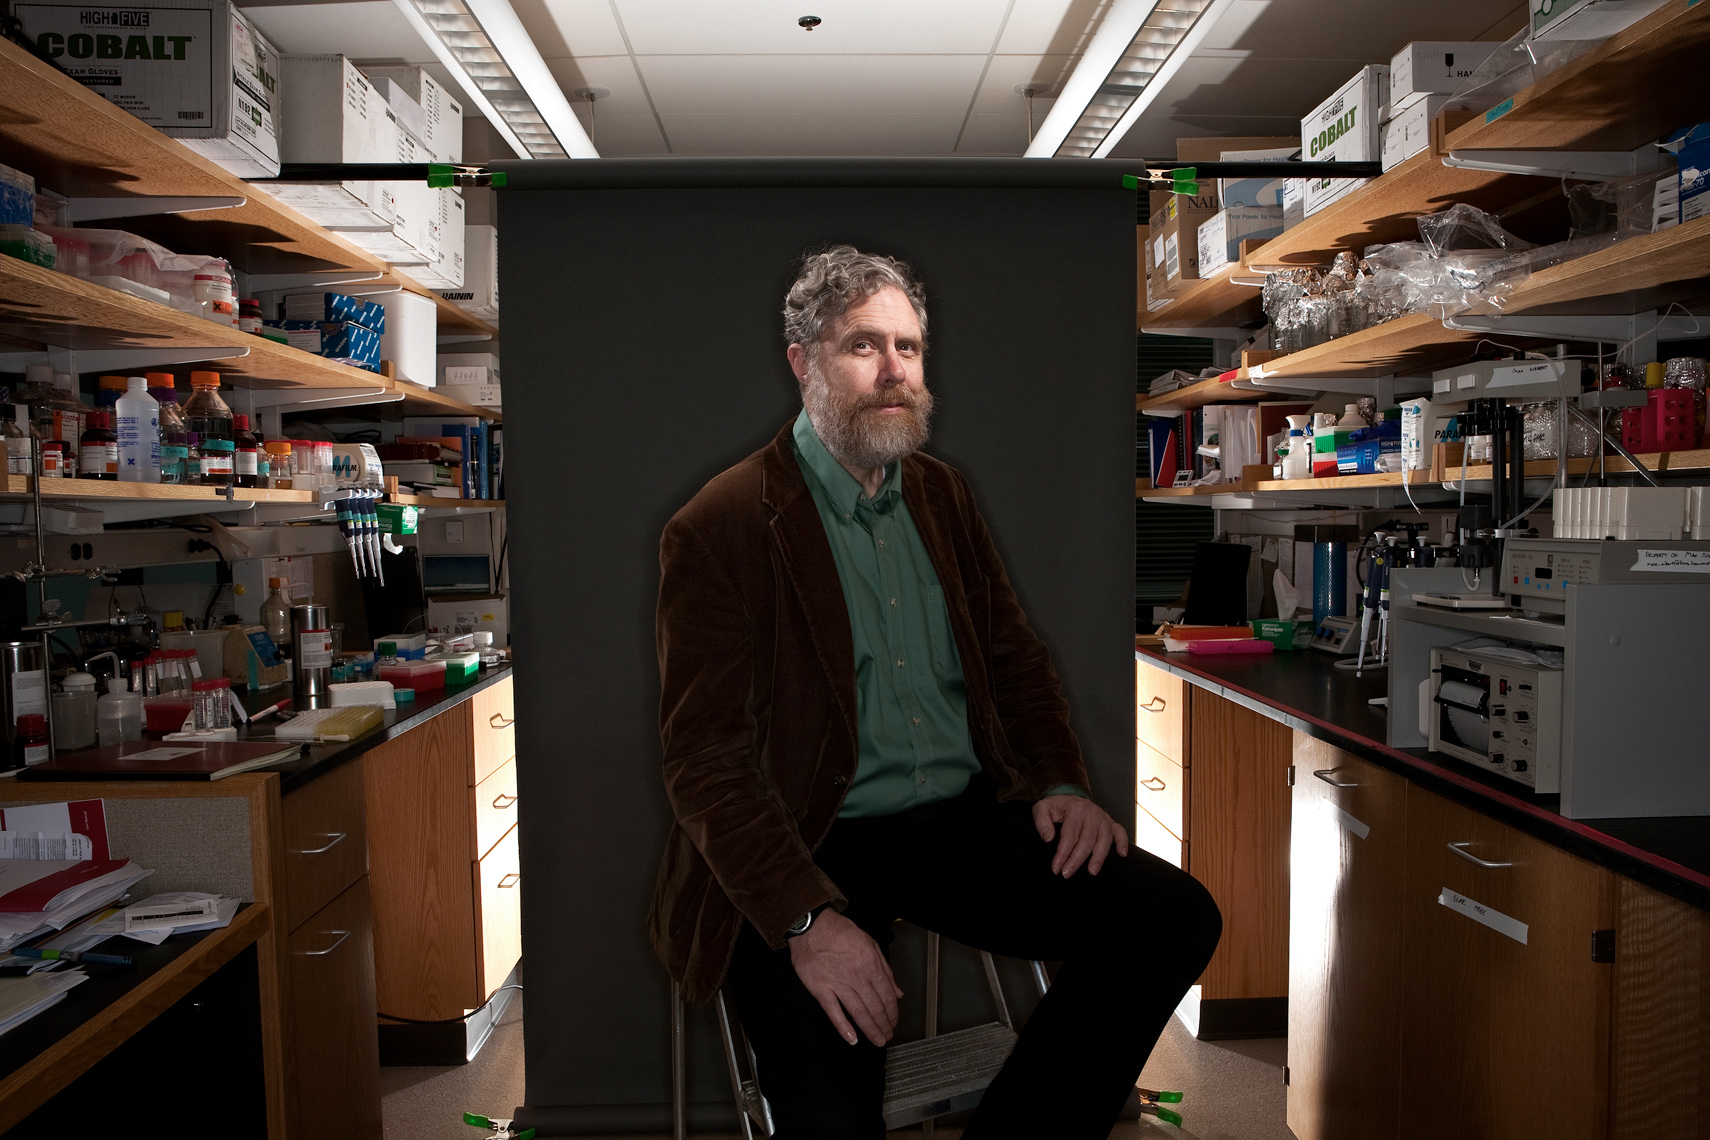 GEORGE CHURCH, GENETICIST, HARVARD UNIVERSITY • FORBES MAGAZINE • JASON GROW PHOTOGRAPHY